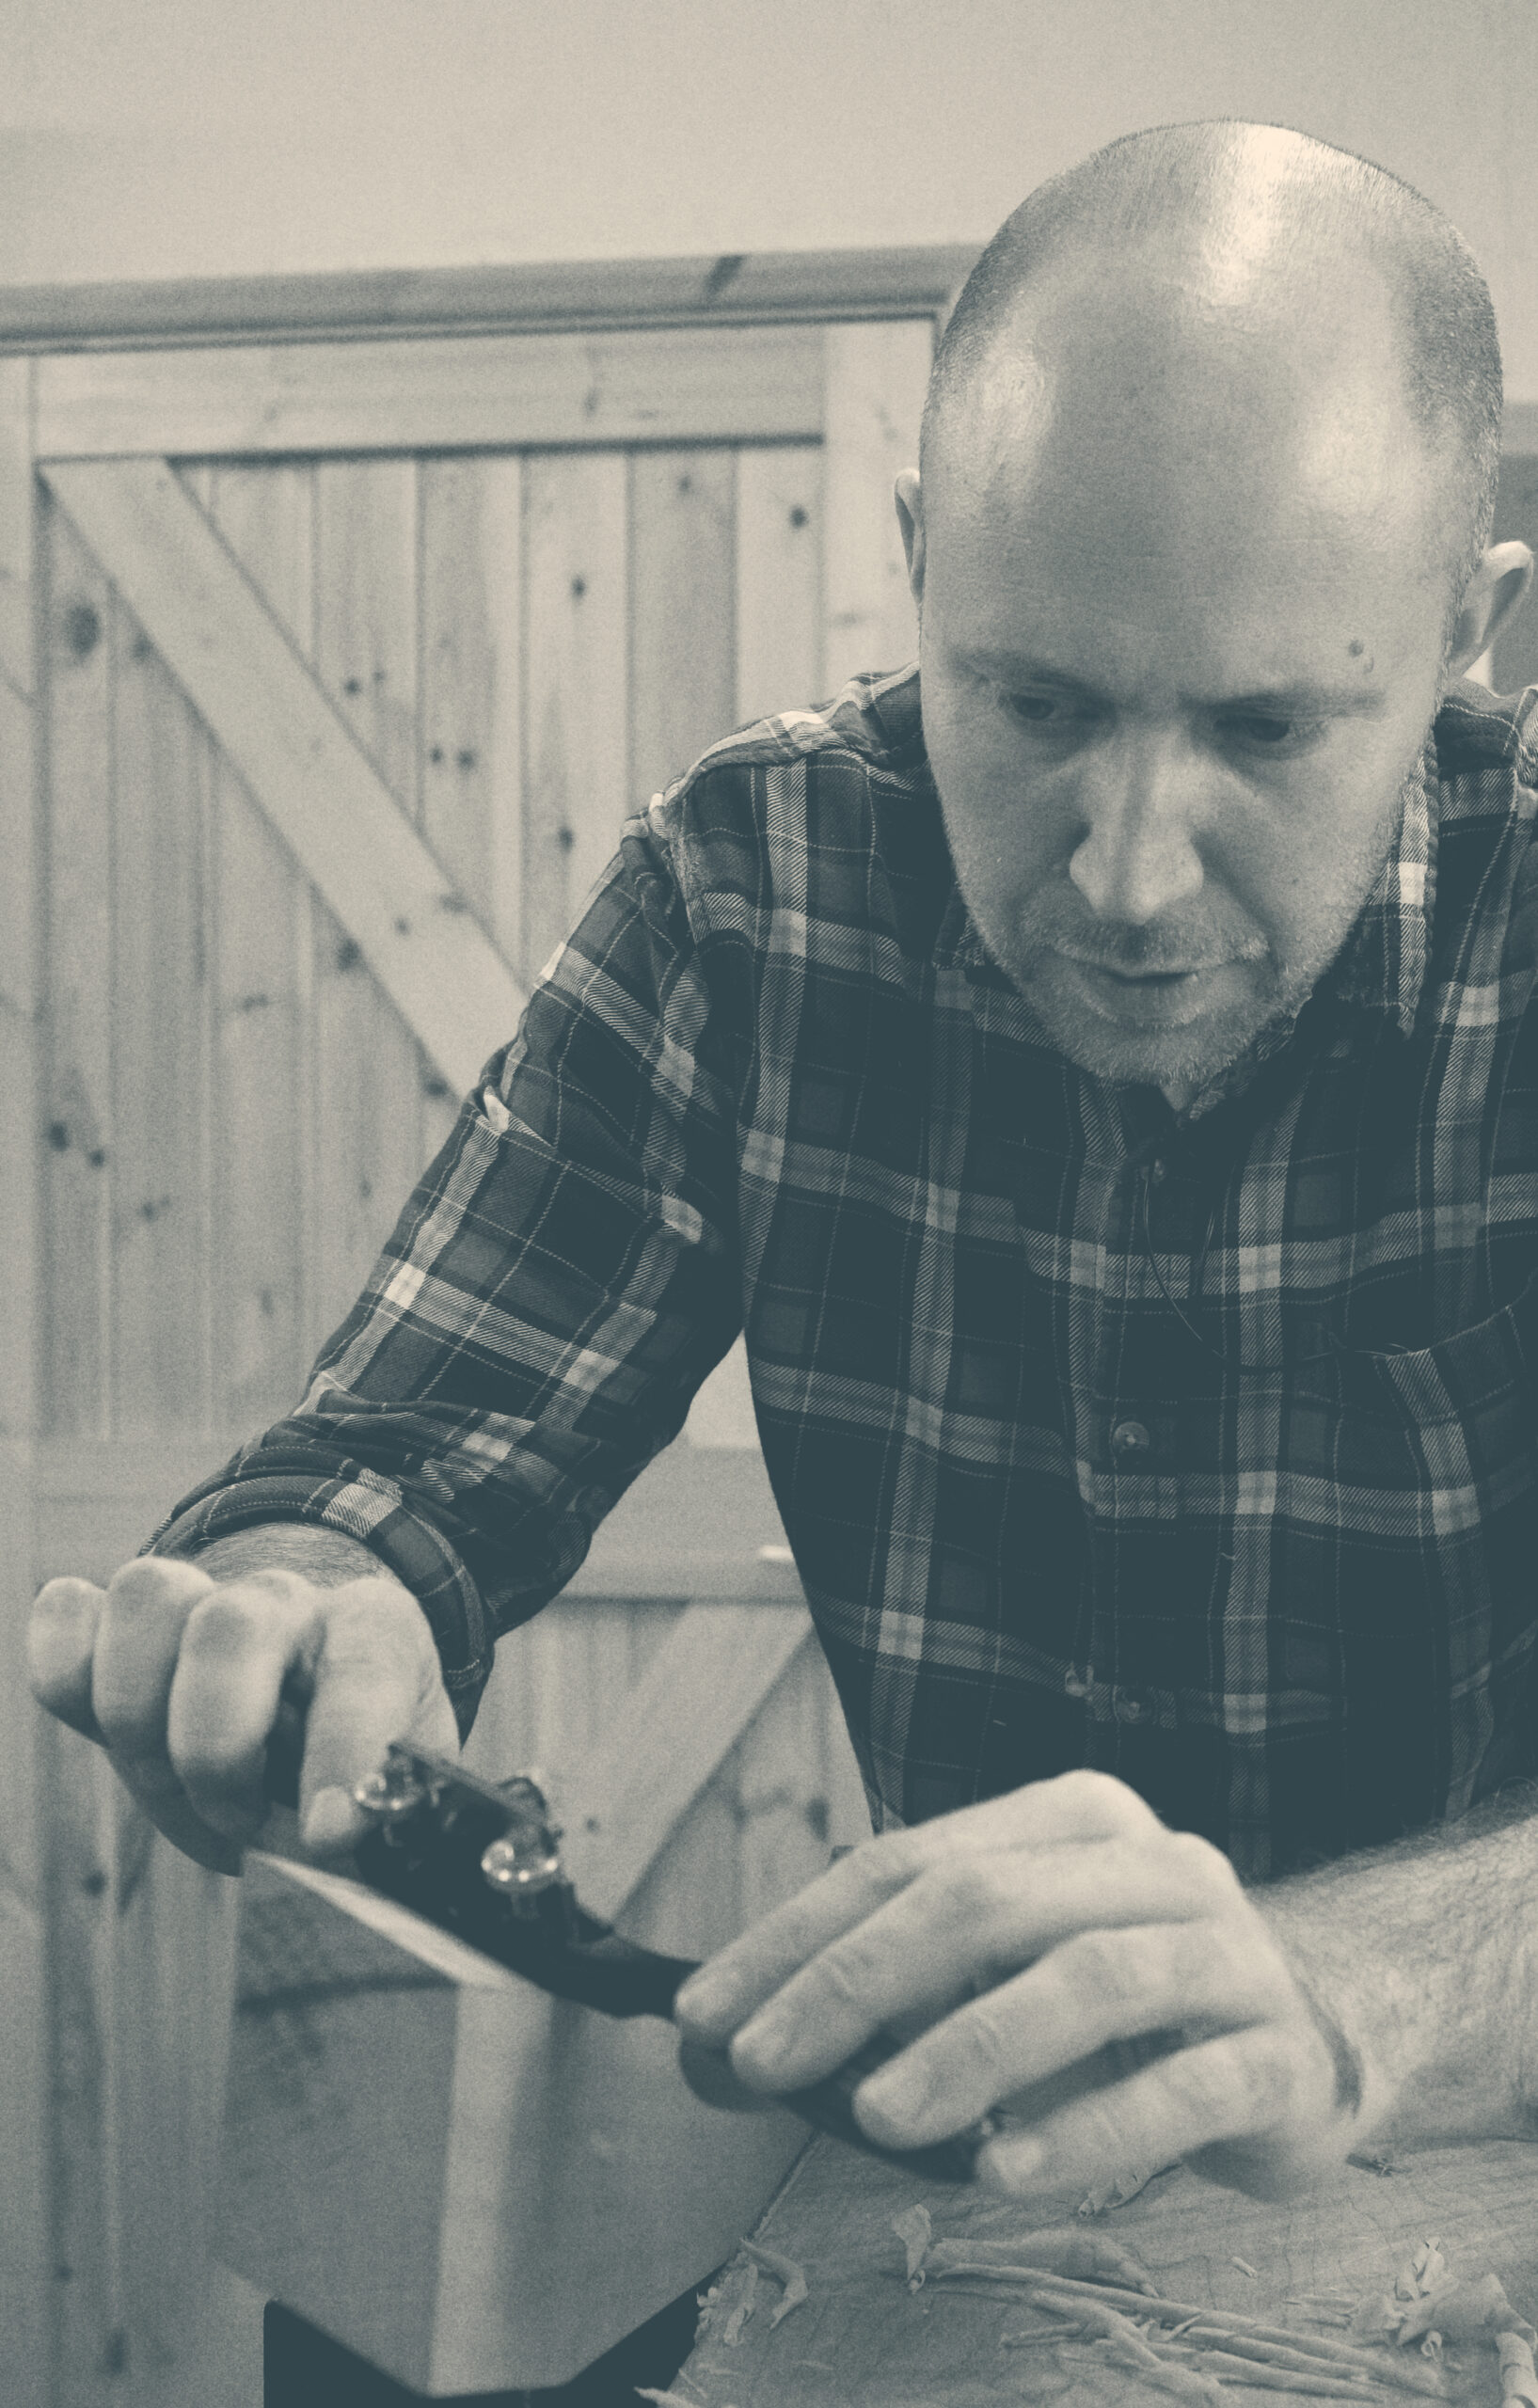 Furniture Designer/Maker and woodworker using a spokeshave to shape a component